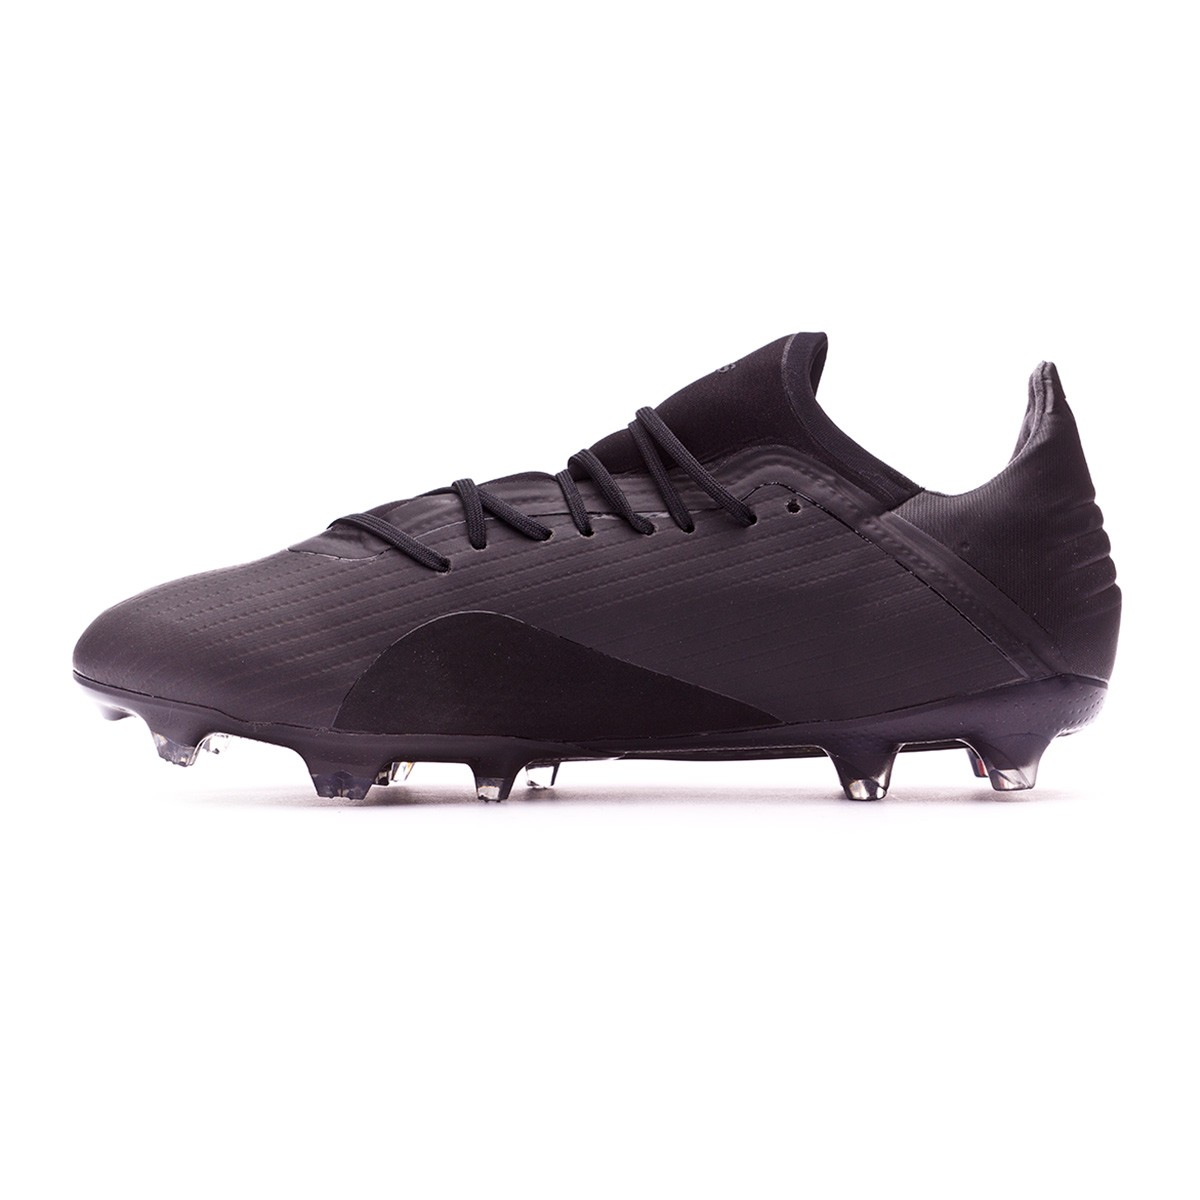 a034c936932d Boot adidas X 18.2 FG Core black-White-Solid grey - Leaked soccer